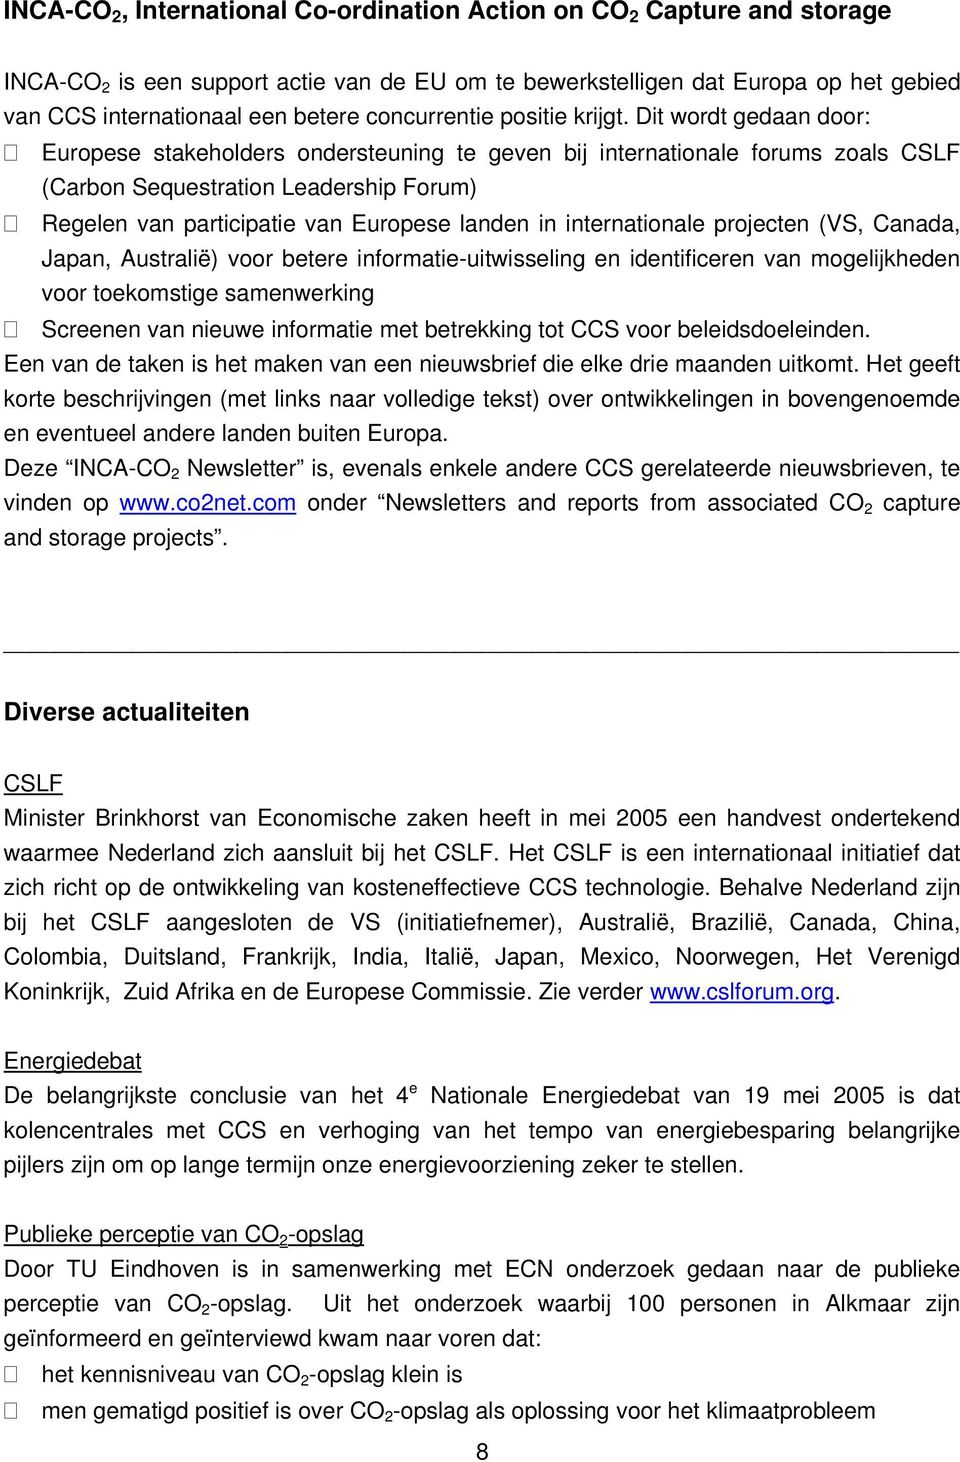 Dit wordt gedaan door: Europese stakeholders ondersteuning te geven bij internationale forums zoals CSLF (Carbon Sequestration Leadership Forum) Regelen van participatie van Europese landen in